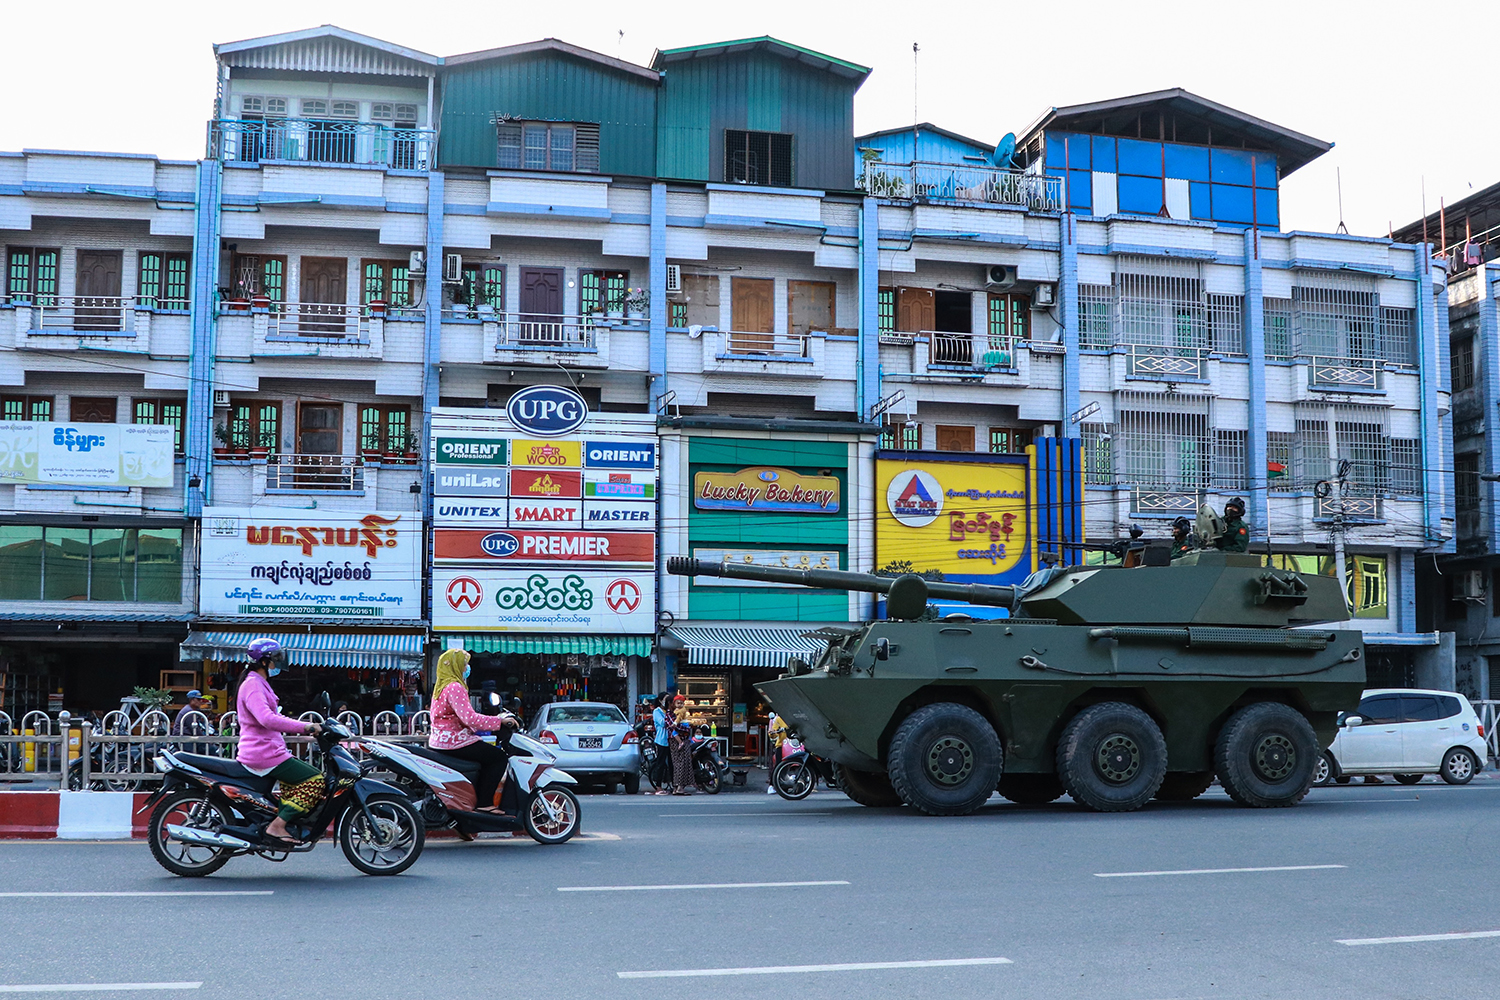 An armored vehicle rolls down a street in Myitkyina, Kachin State, Myanmar, on Feb. 2, a day after a military coup. STR/AFP via Getty Images